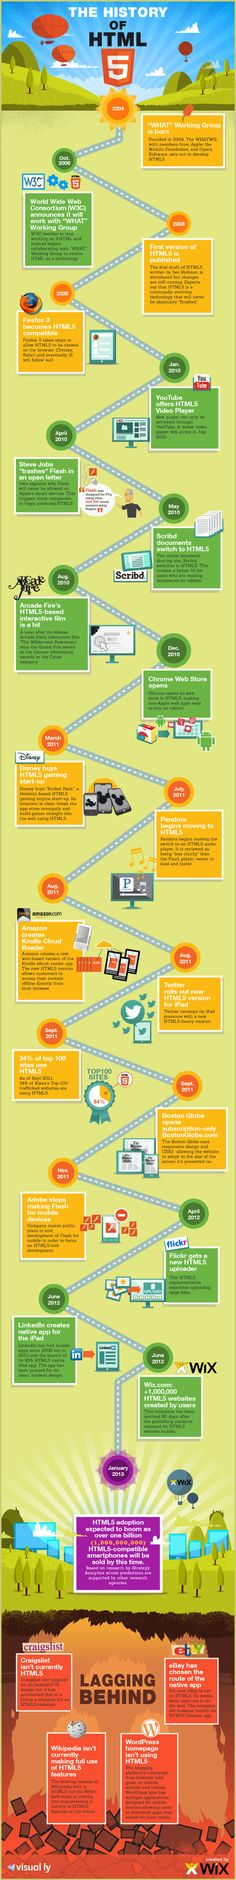 The History of #HTML5 - Infographic